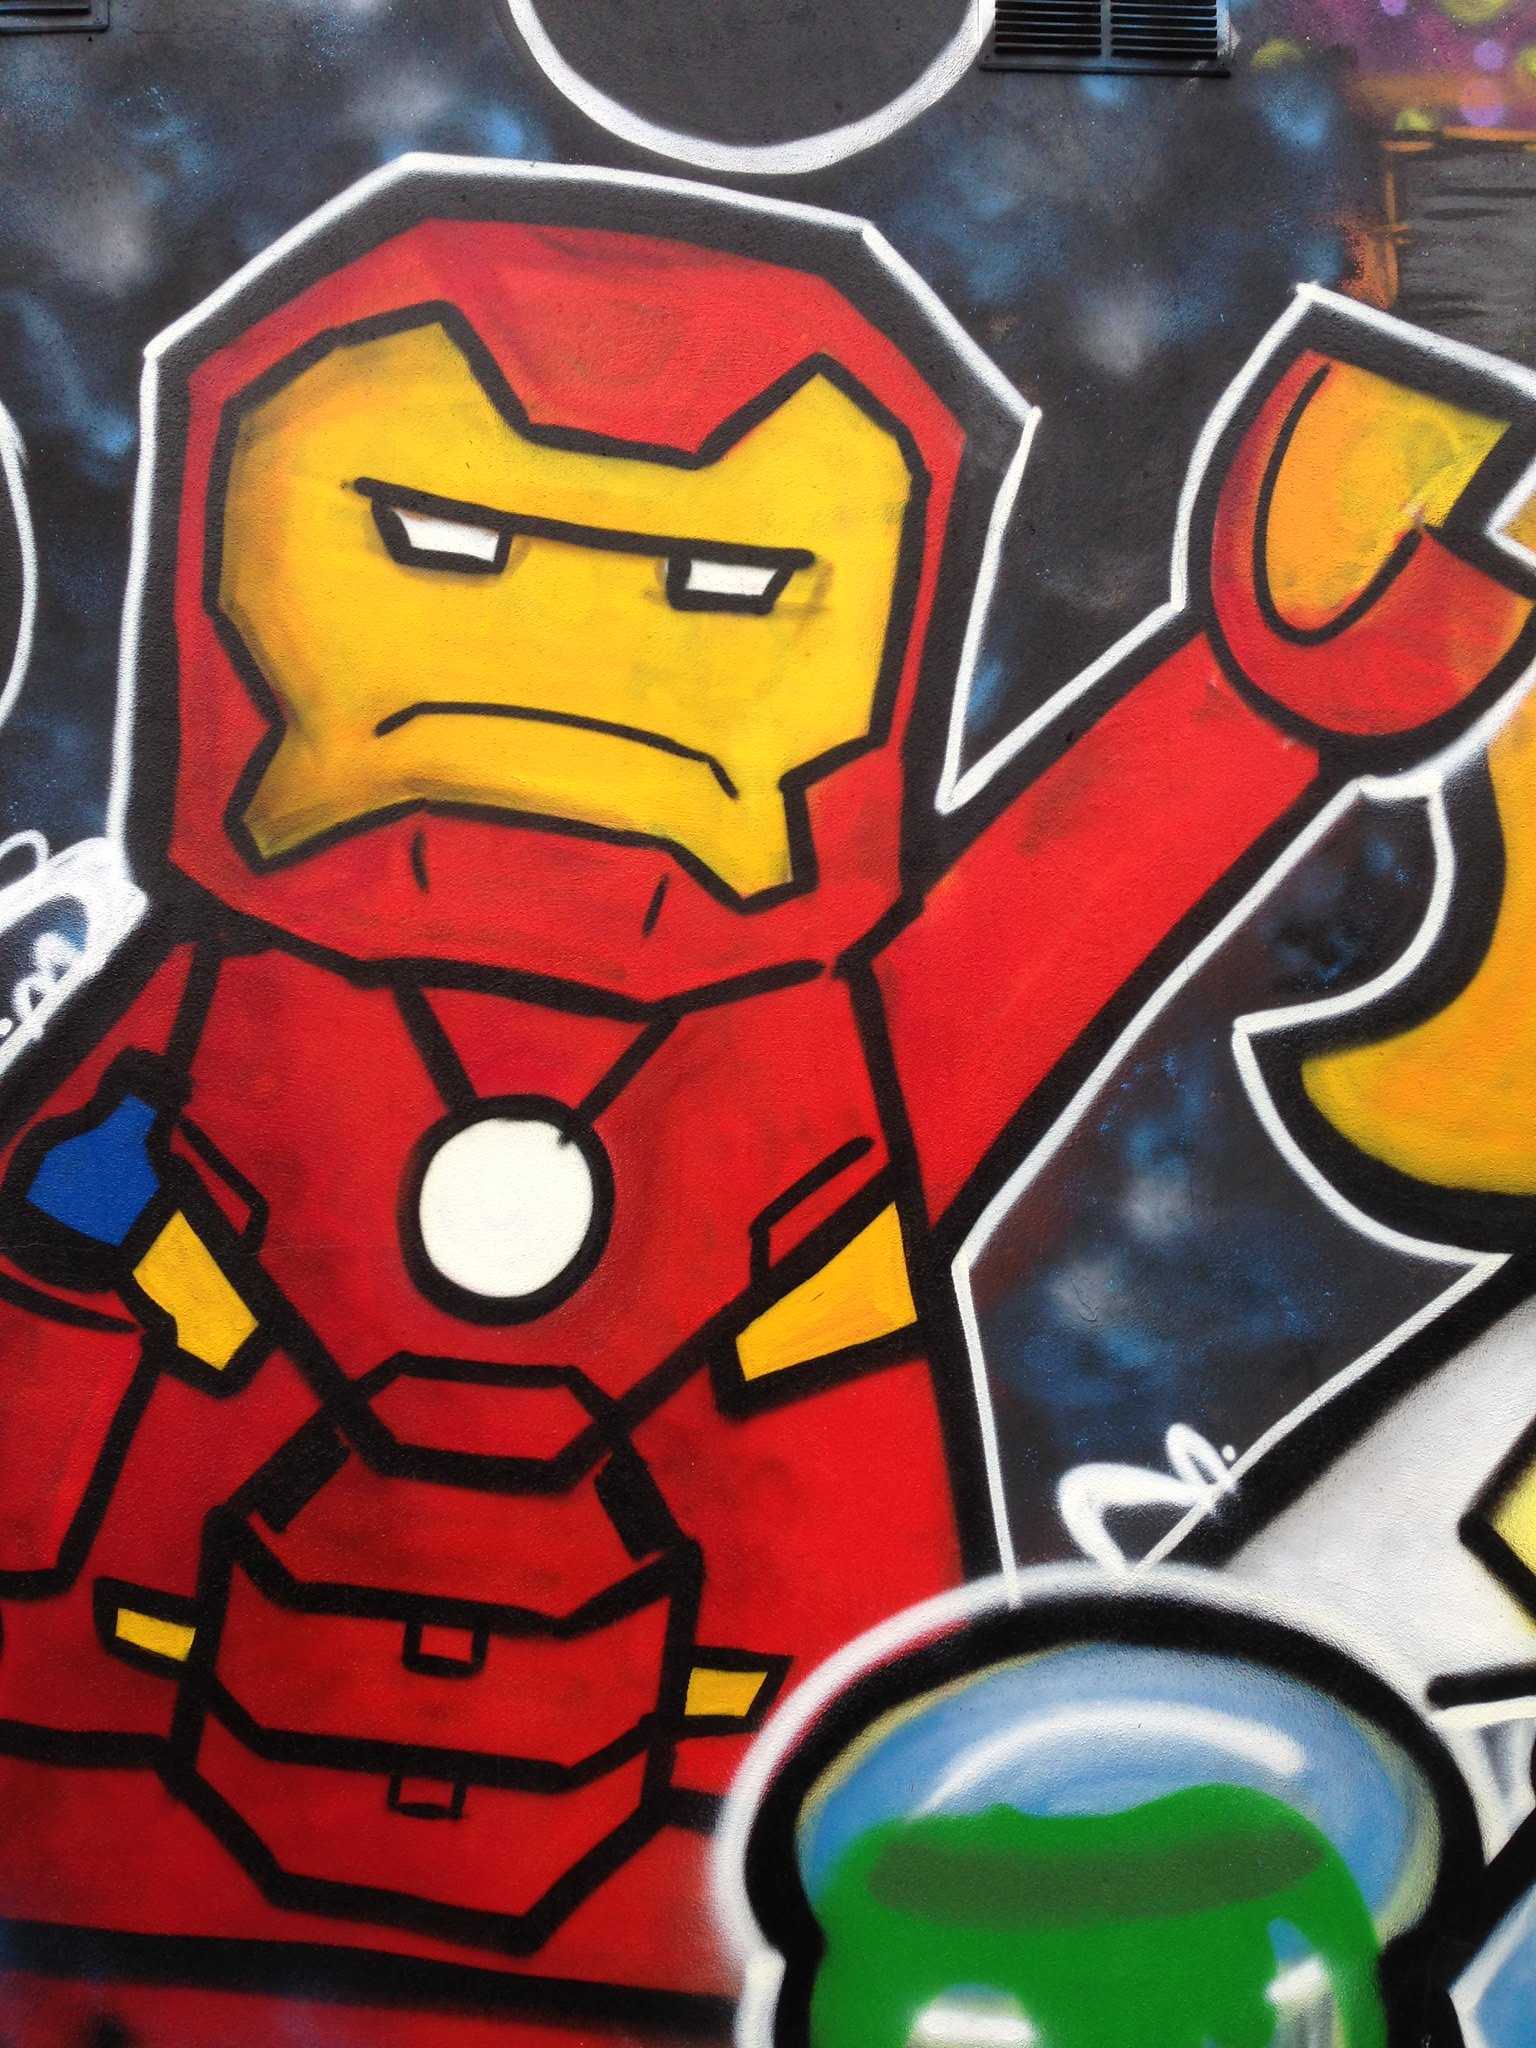 Marvel Lego Iron Man street art, Blackpool, by Dominic Carlyle